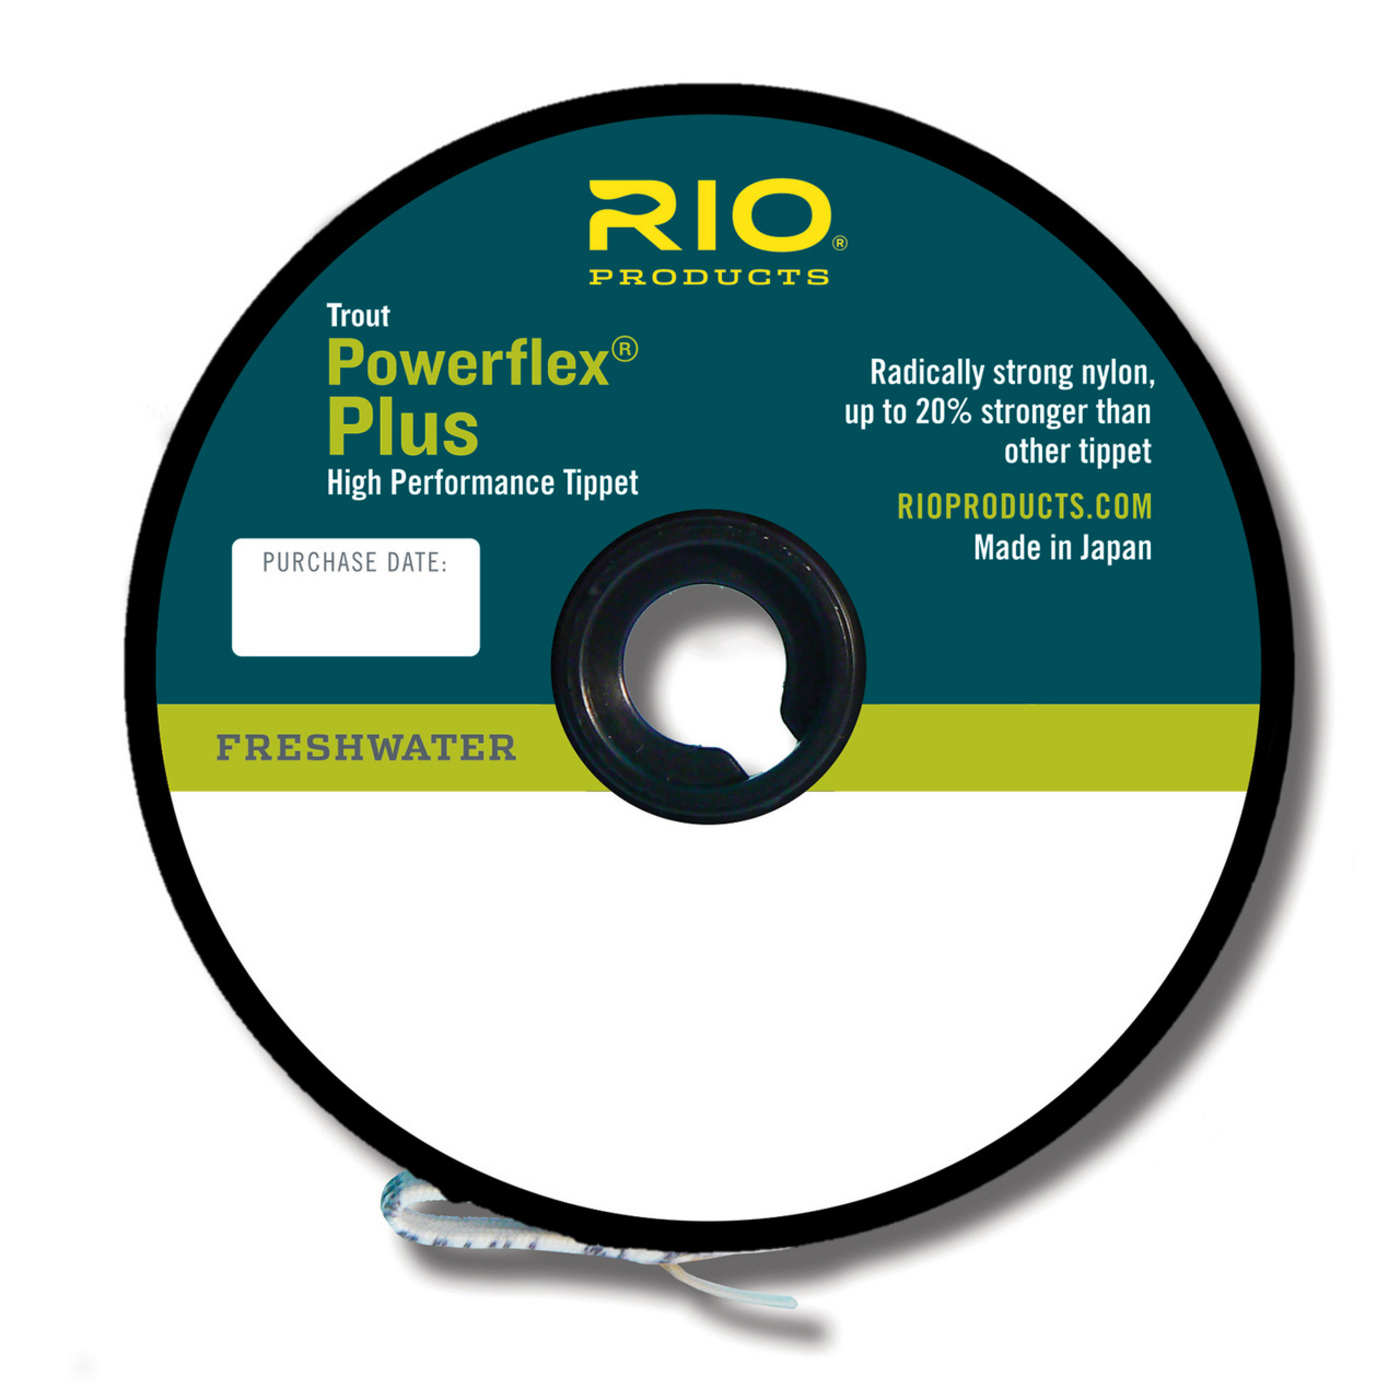 Rio Products Powerflex Plus Tippet 6X